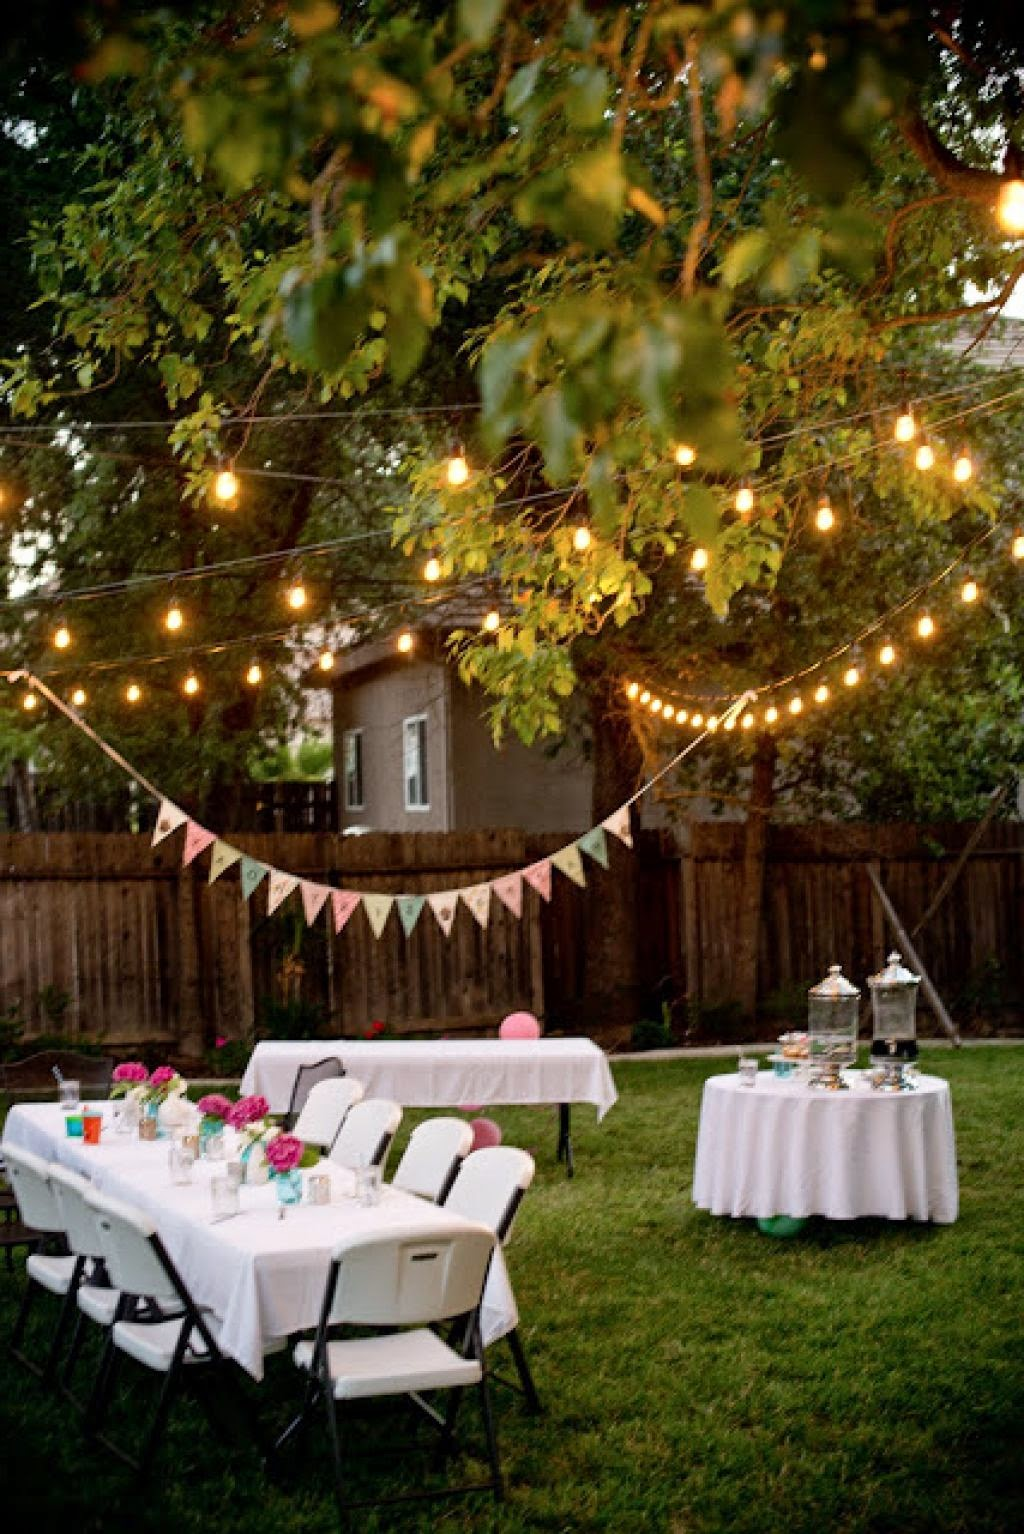 Enjoy a year-end party in the backyard